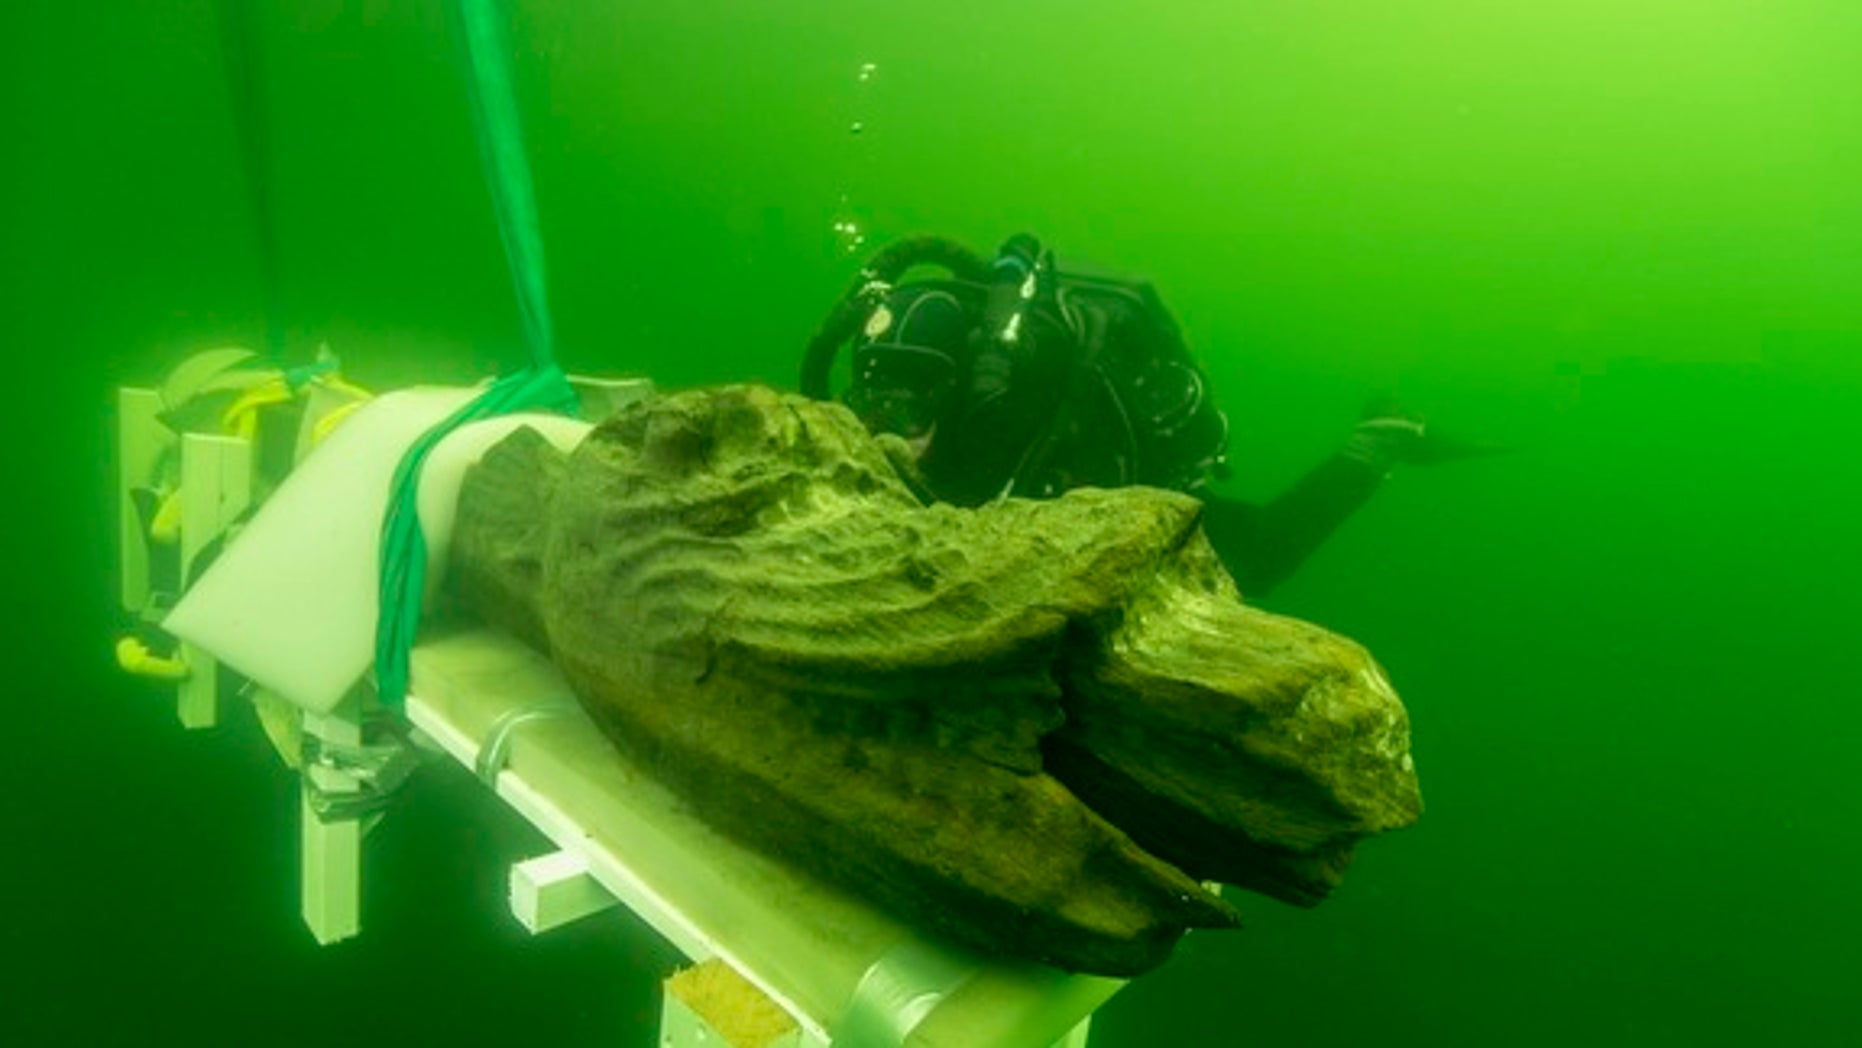 """Divers recently retrieved the monster-headed figurehead of a Danish warship known as the """"Gribshunden,"""" or """"grip dog,"""" that sank beneath the waves in 1495 off the coast of  Sweden. The ship may be the only preserved warship from the time period"""